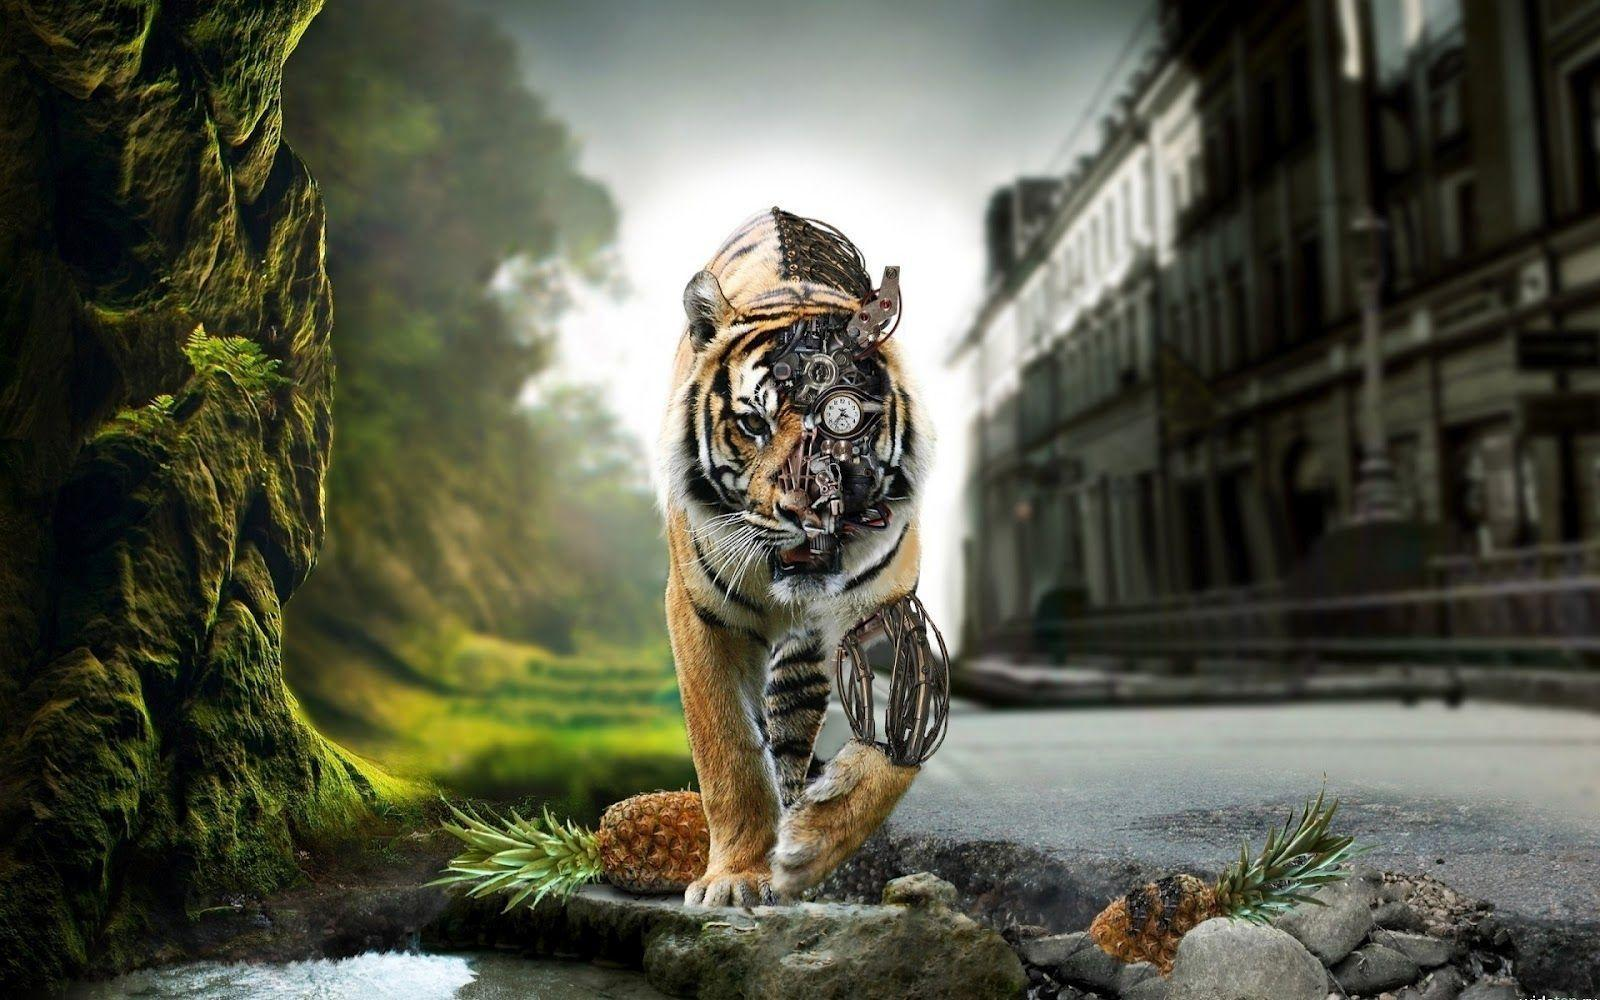 1 Tiger Wallpaper Tigers 1024×768 - High Definition Wallpaper ...